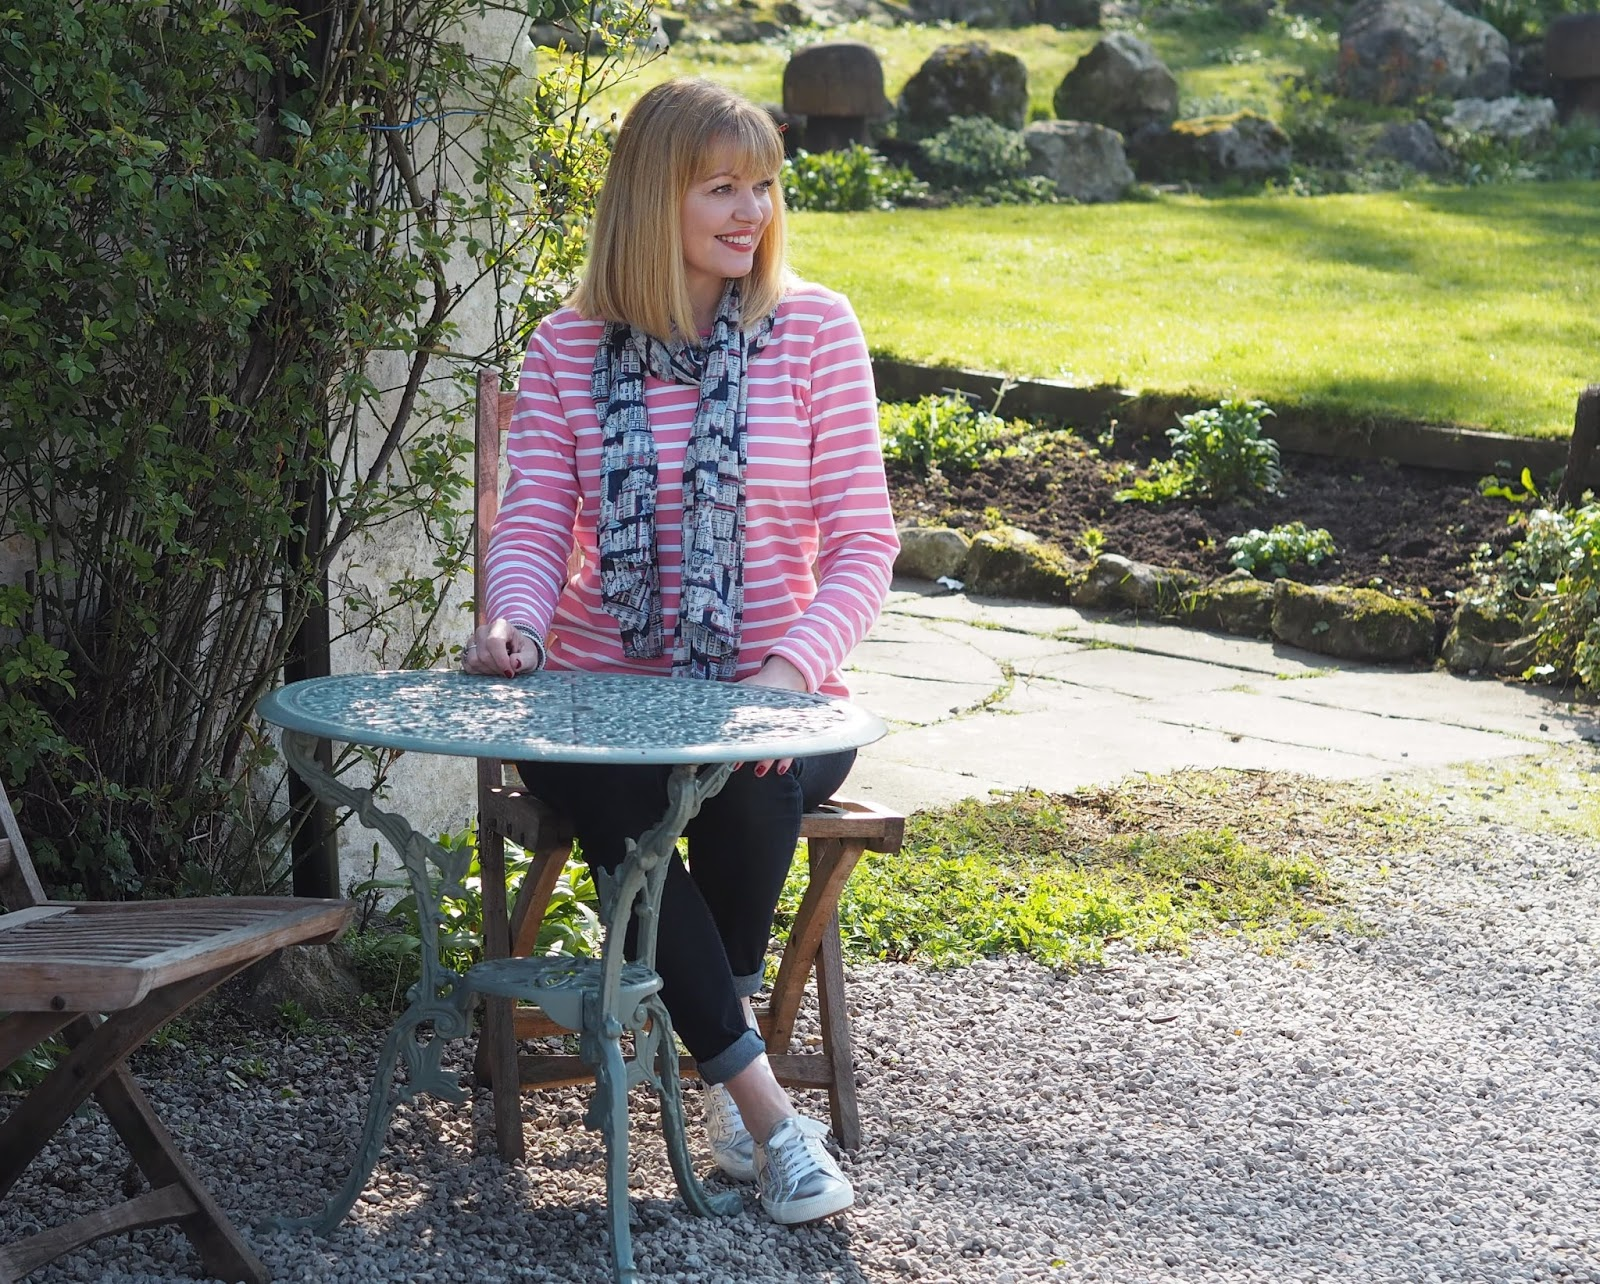 pink and white striped breton top by Tulchan with skinny jeans and silver Superga pumps, seated at an outdoor table